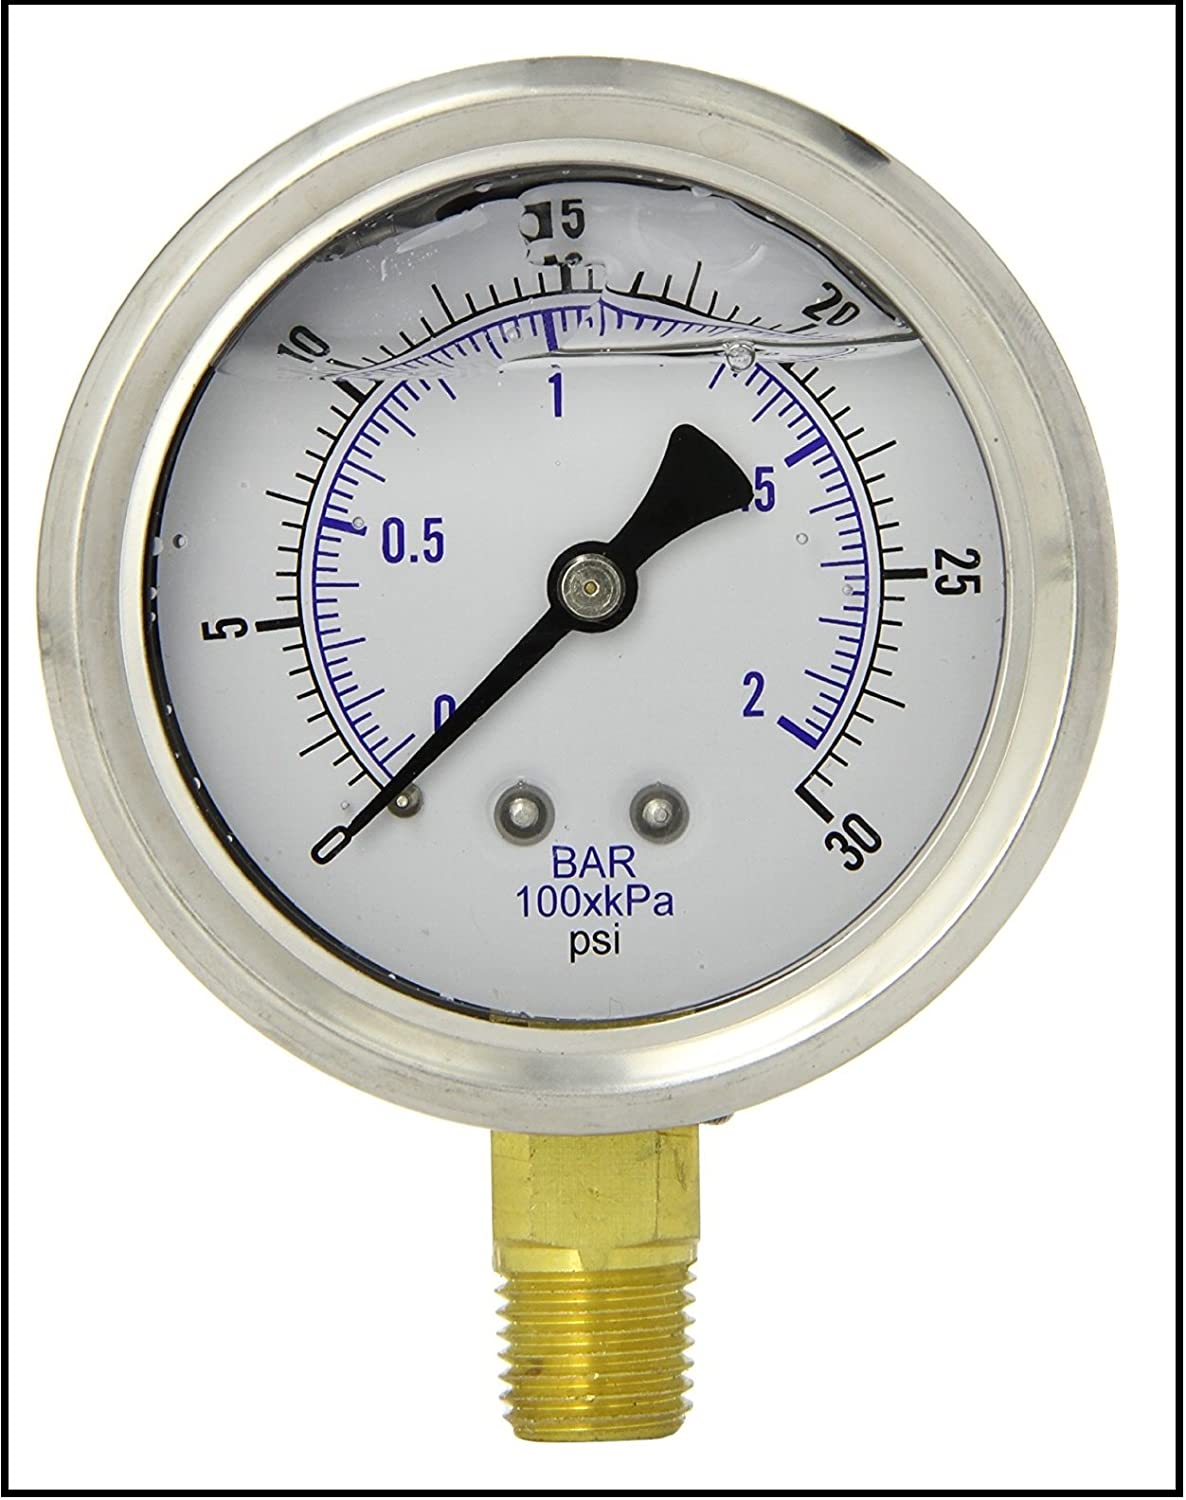 New Stainless Steel Liquid Filled Pressure Gauge Wog Water Oil Gas 0 Vdo Fuel To 30 Psi Lower Mount 1 4 Npt 25 Face Dial For Compressor Hydraulic Air